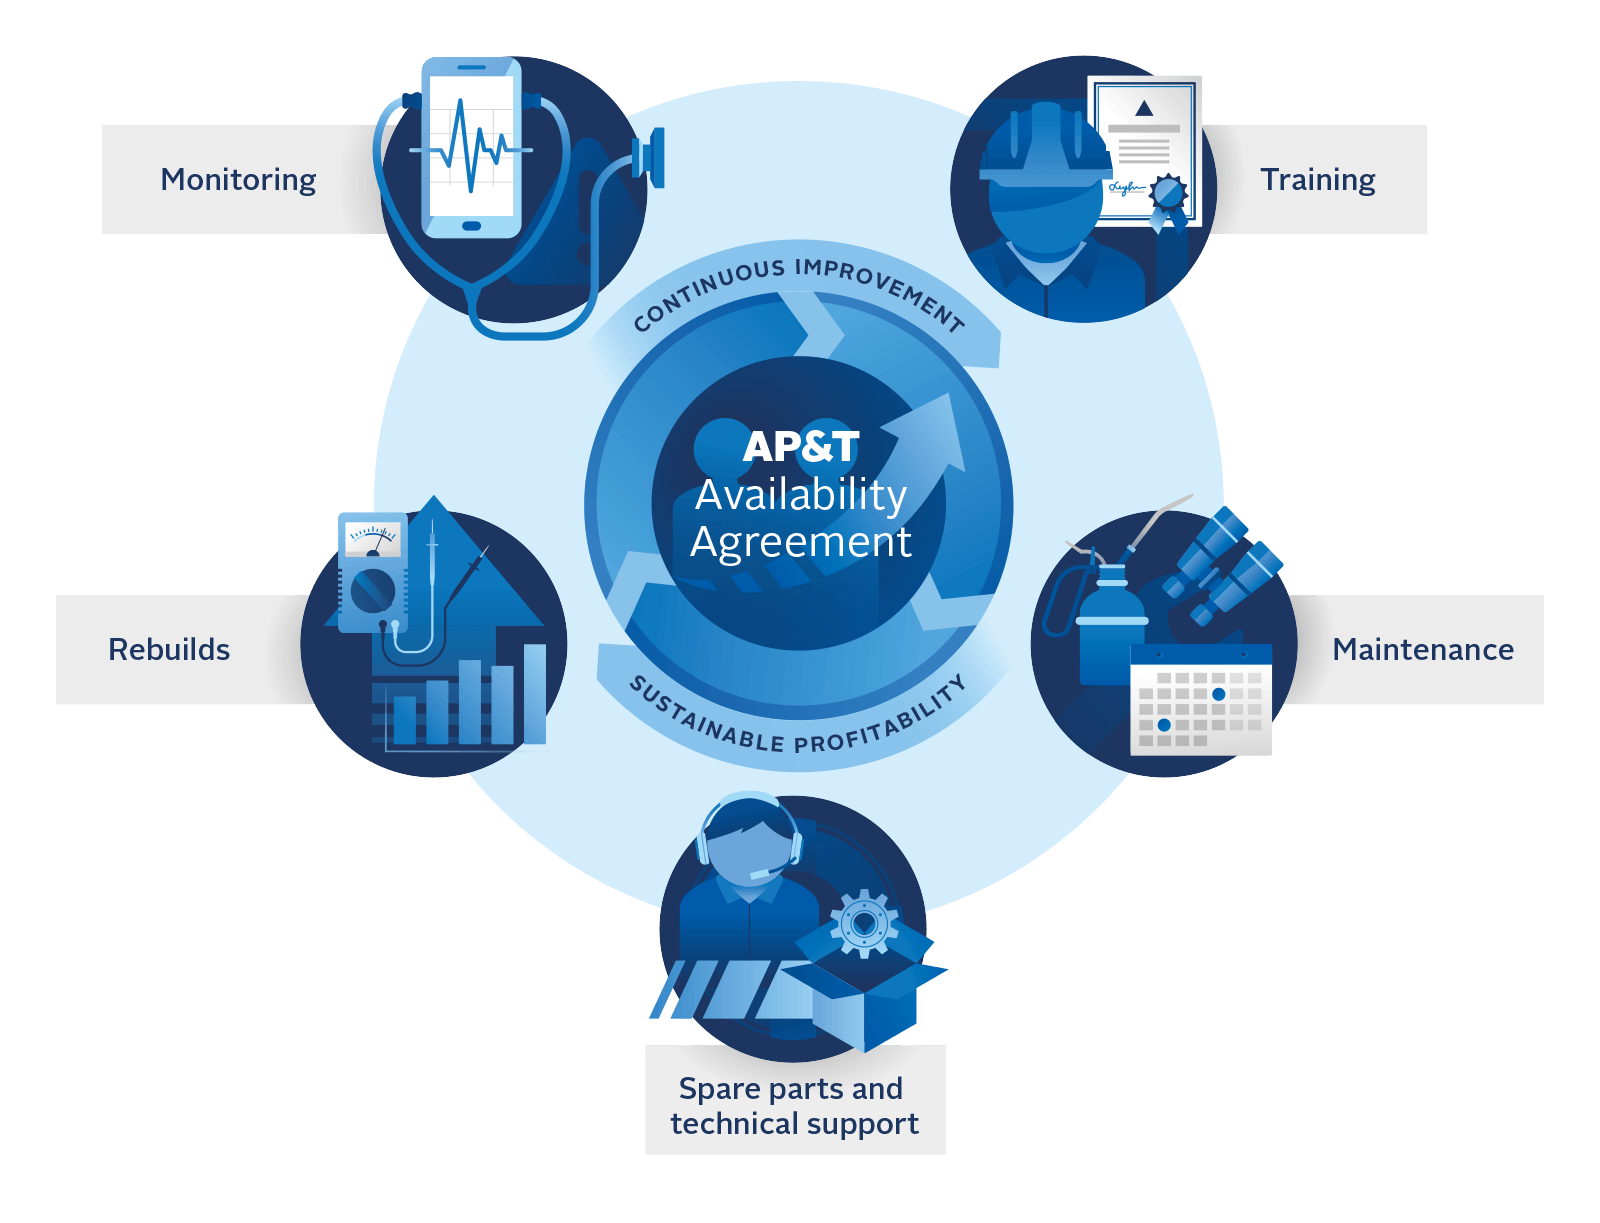 AP&T Aftermarket Services